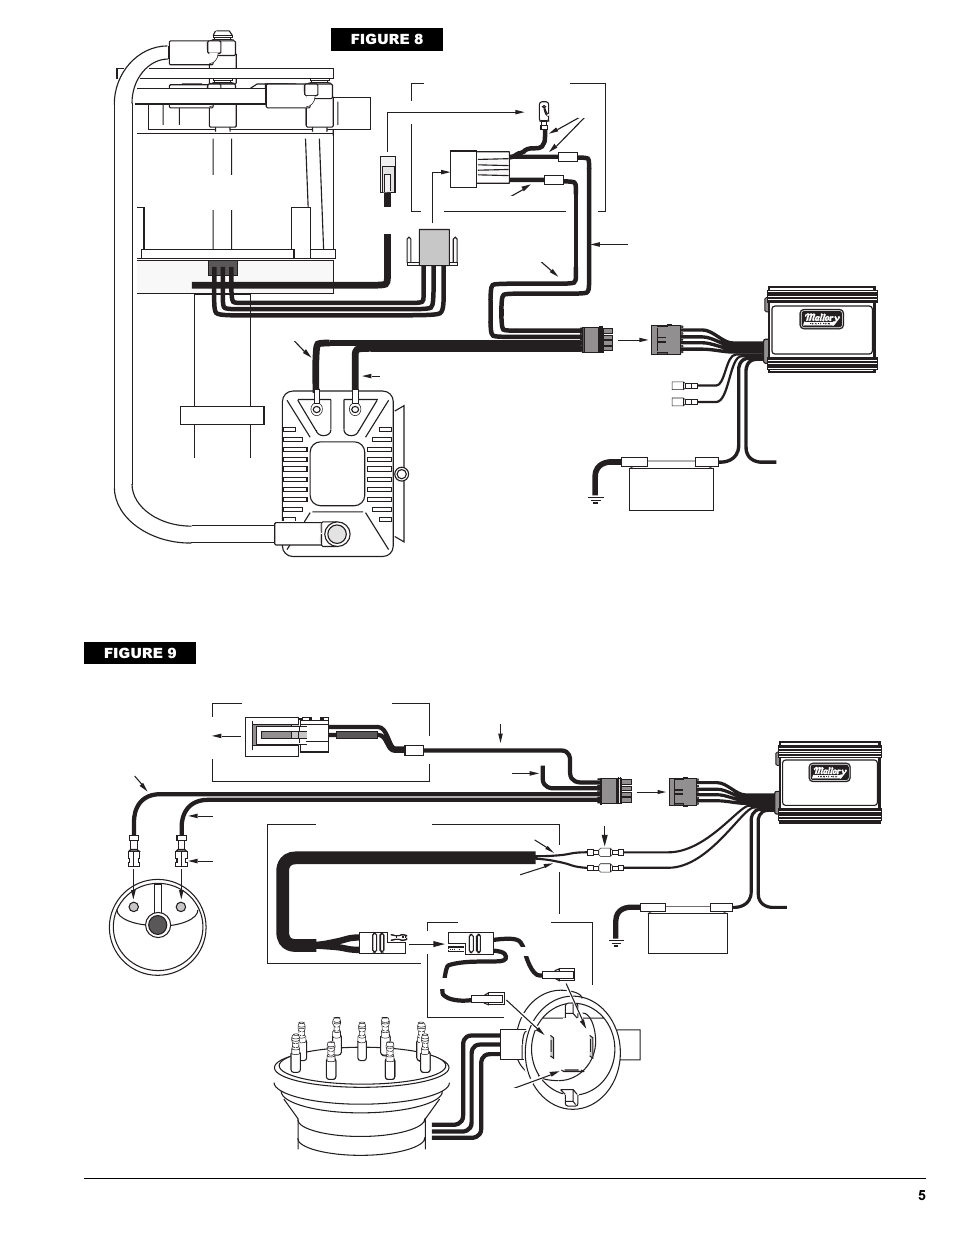 Wiring Diagram General Motors Hei : Gm delco hei distributor ford and american motors figure